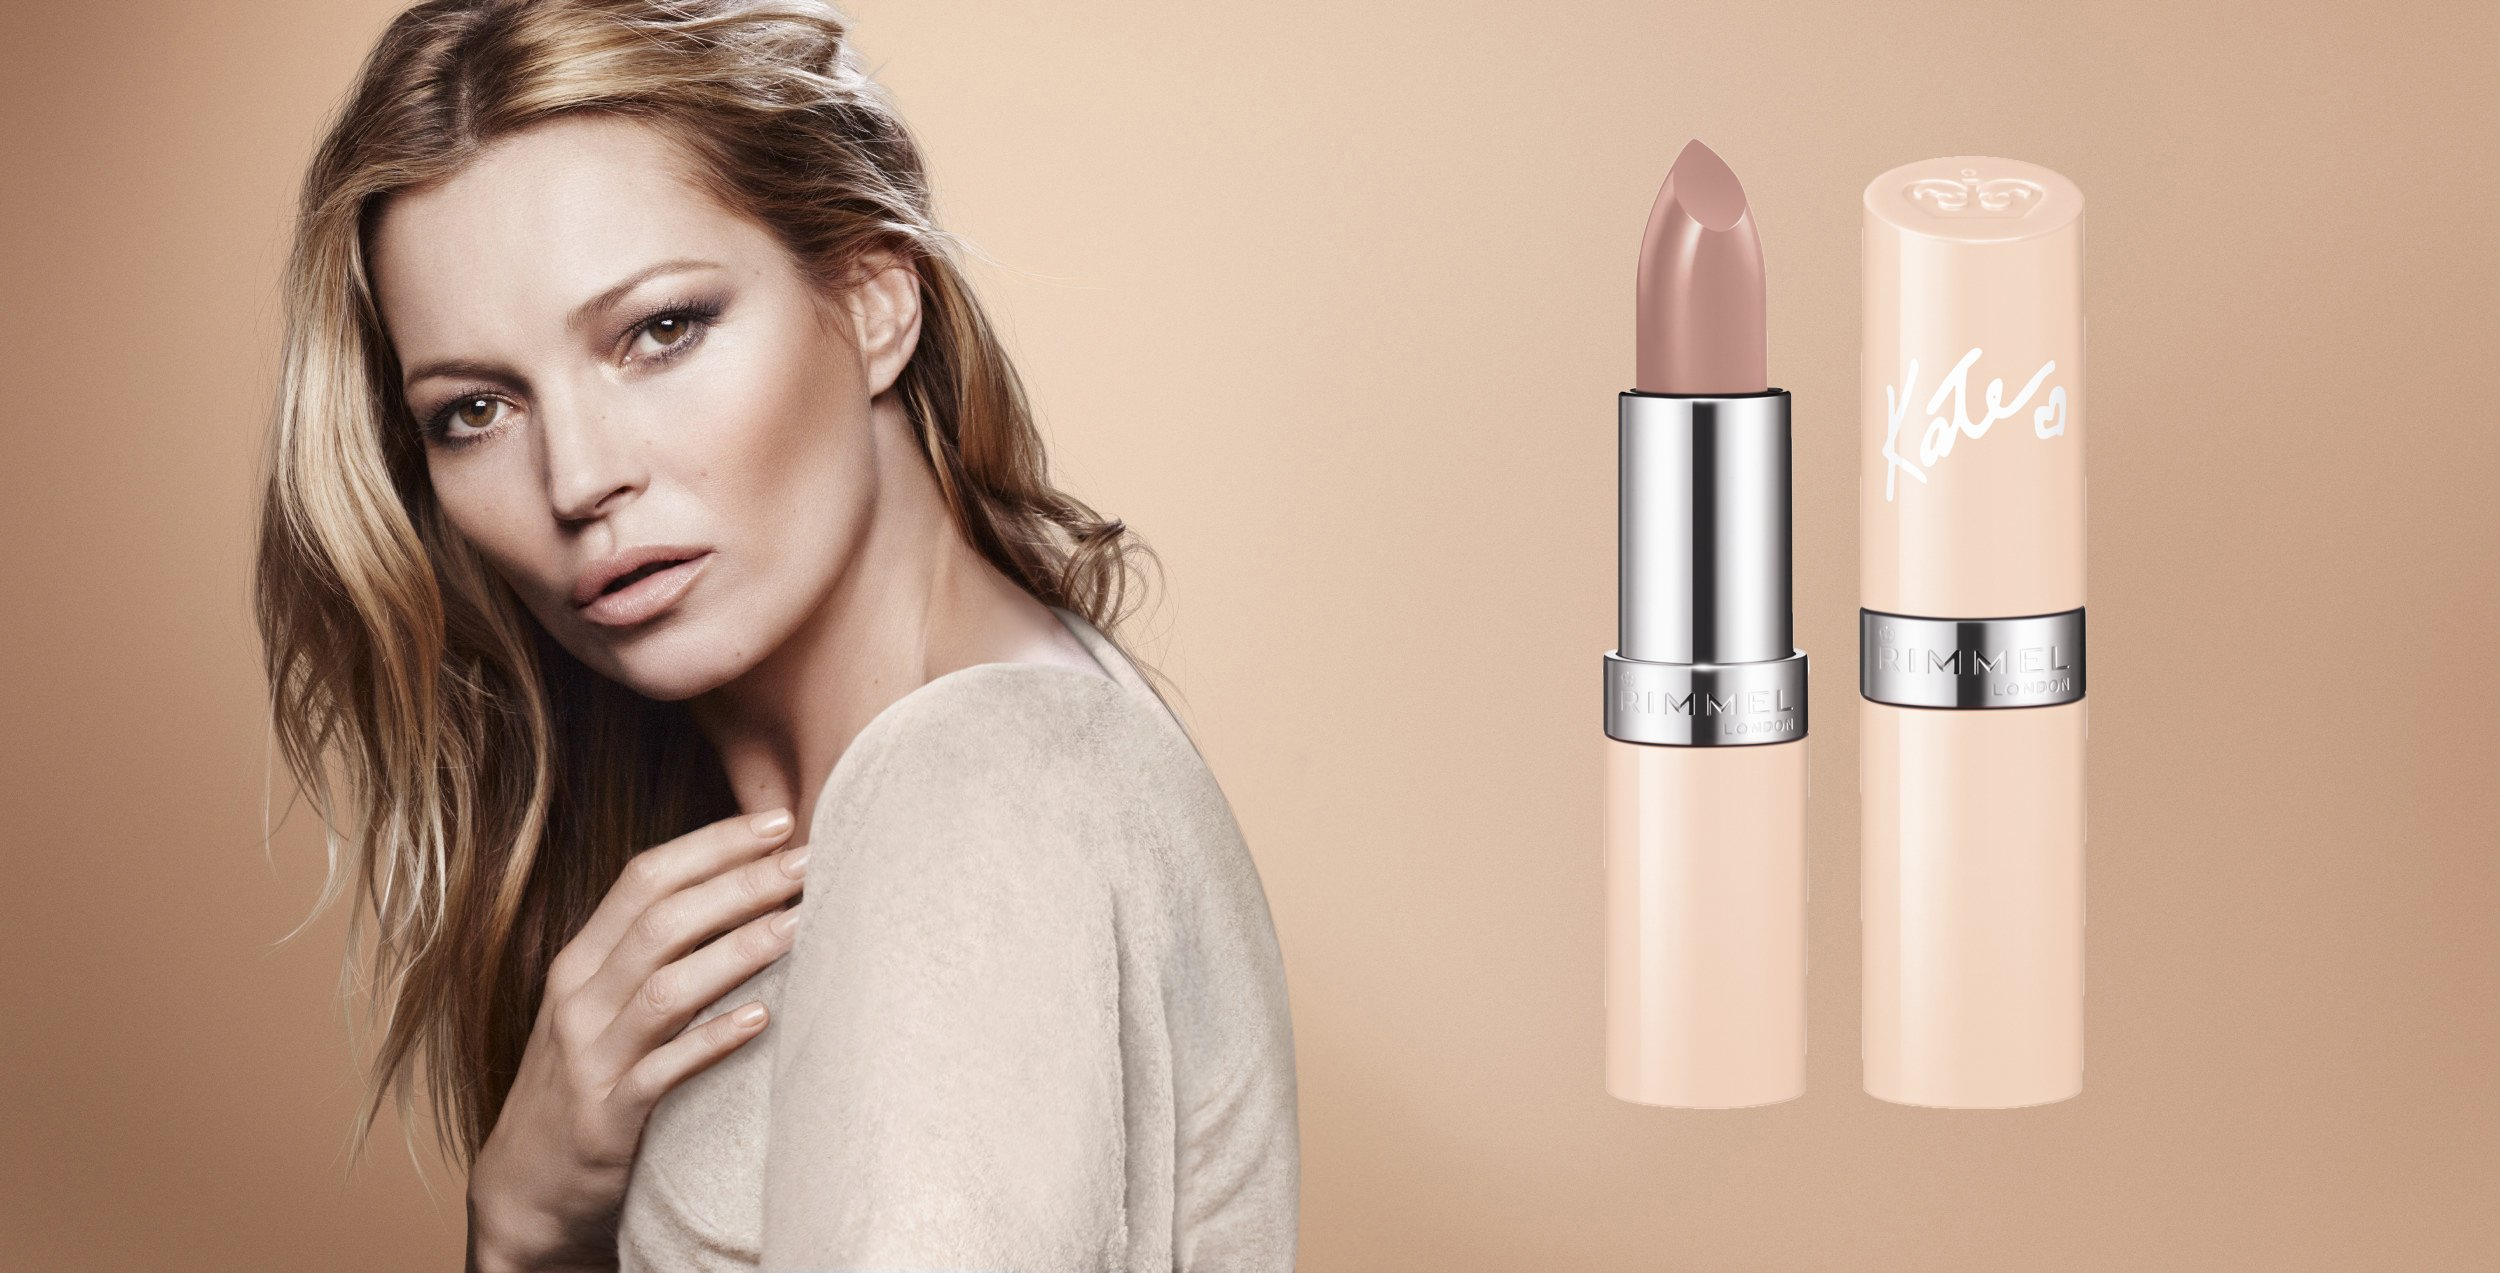 Rimmel Introduces The New Nude Collection By Kate Moss